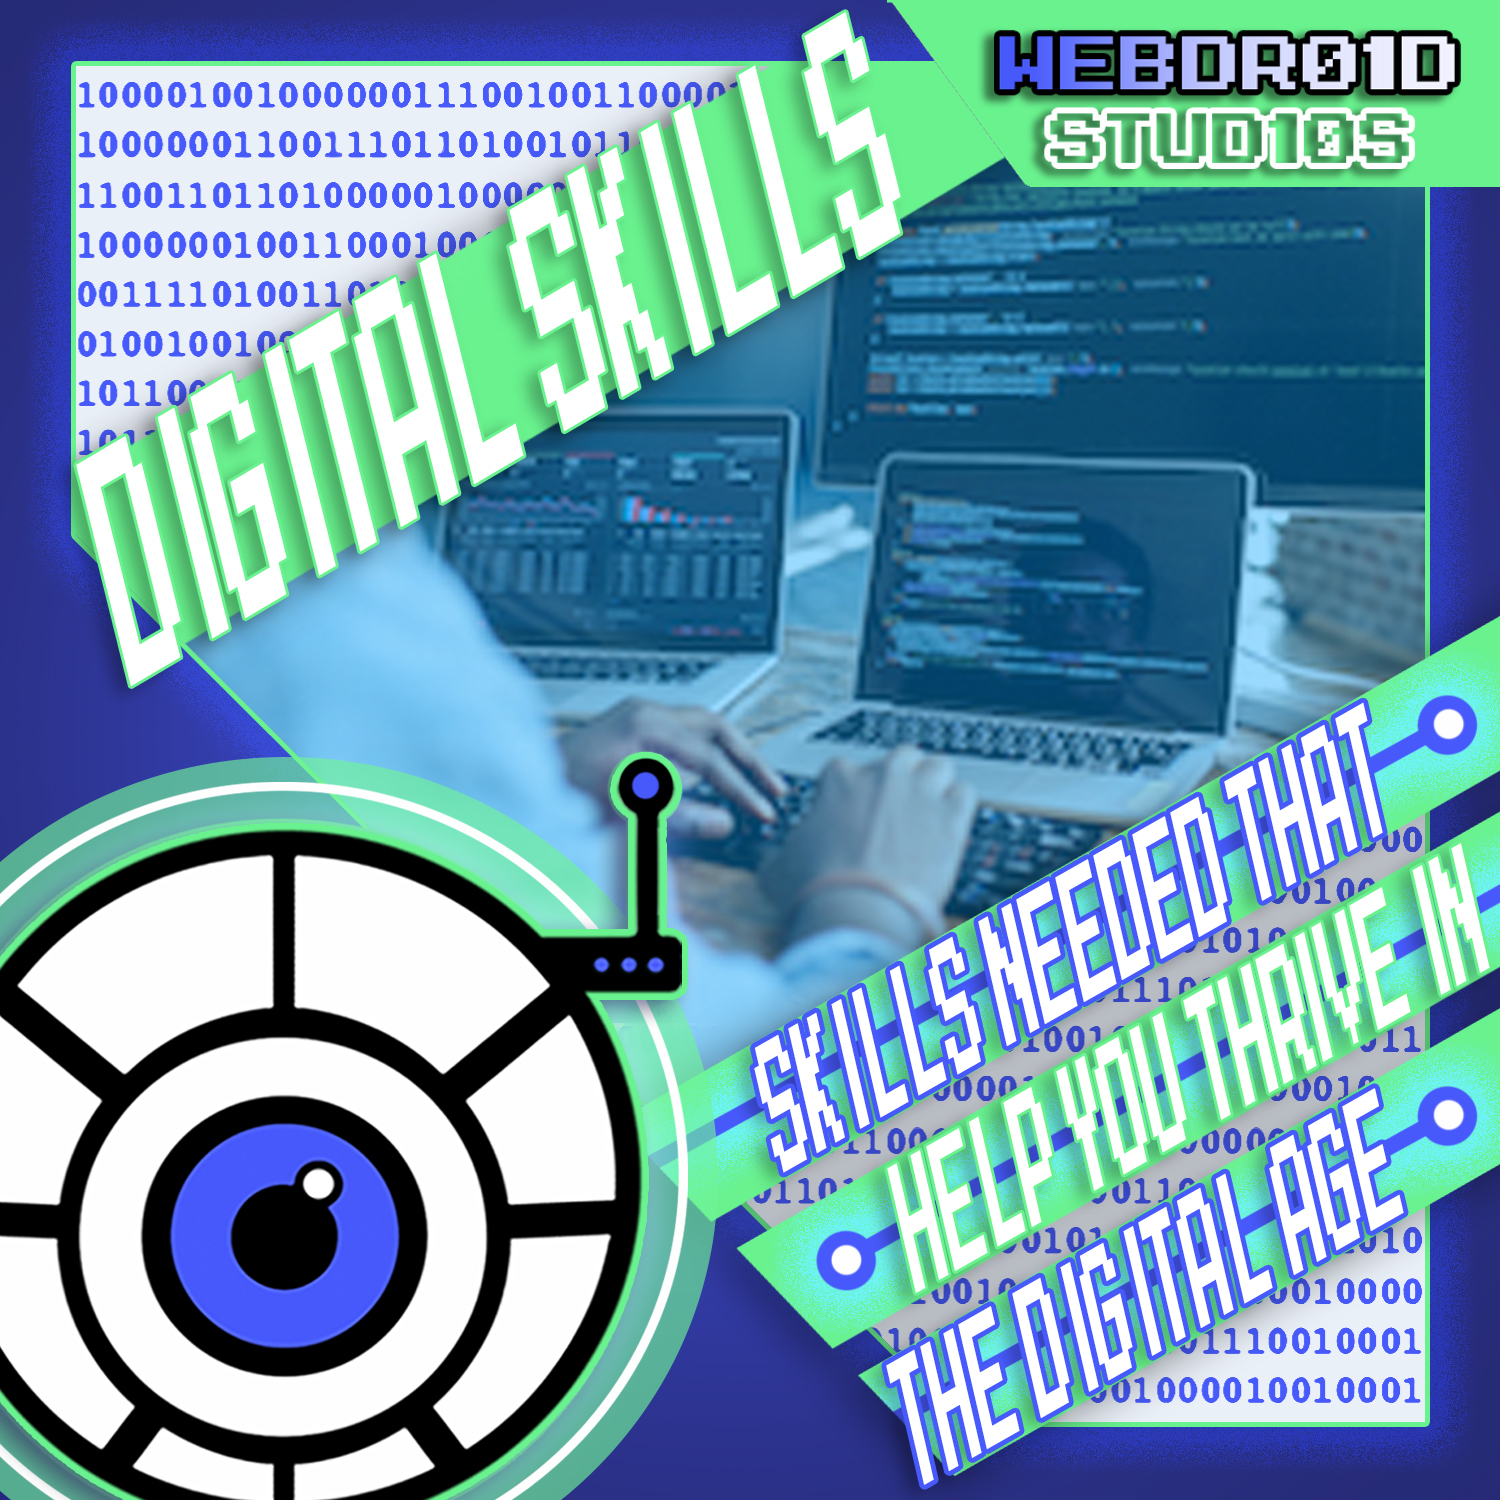 Skills Needed to Thrive in the Digital Age